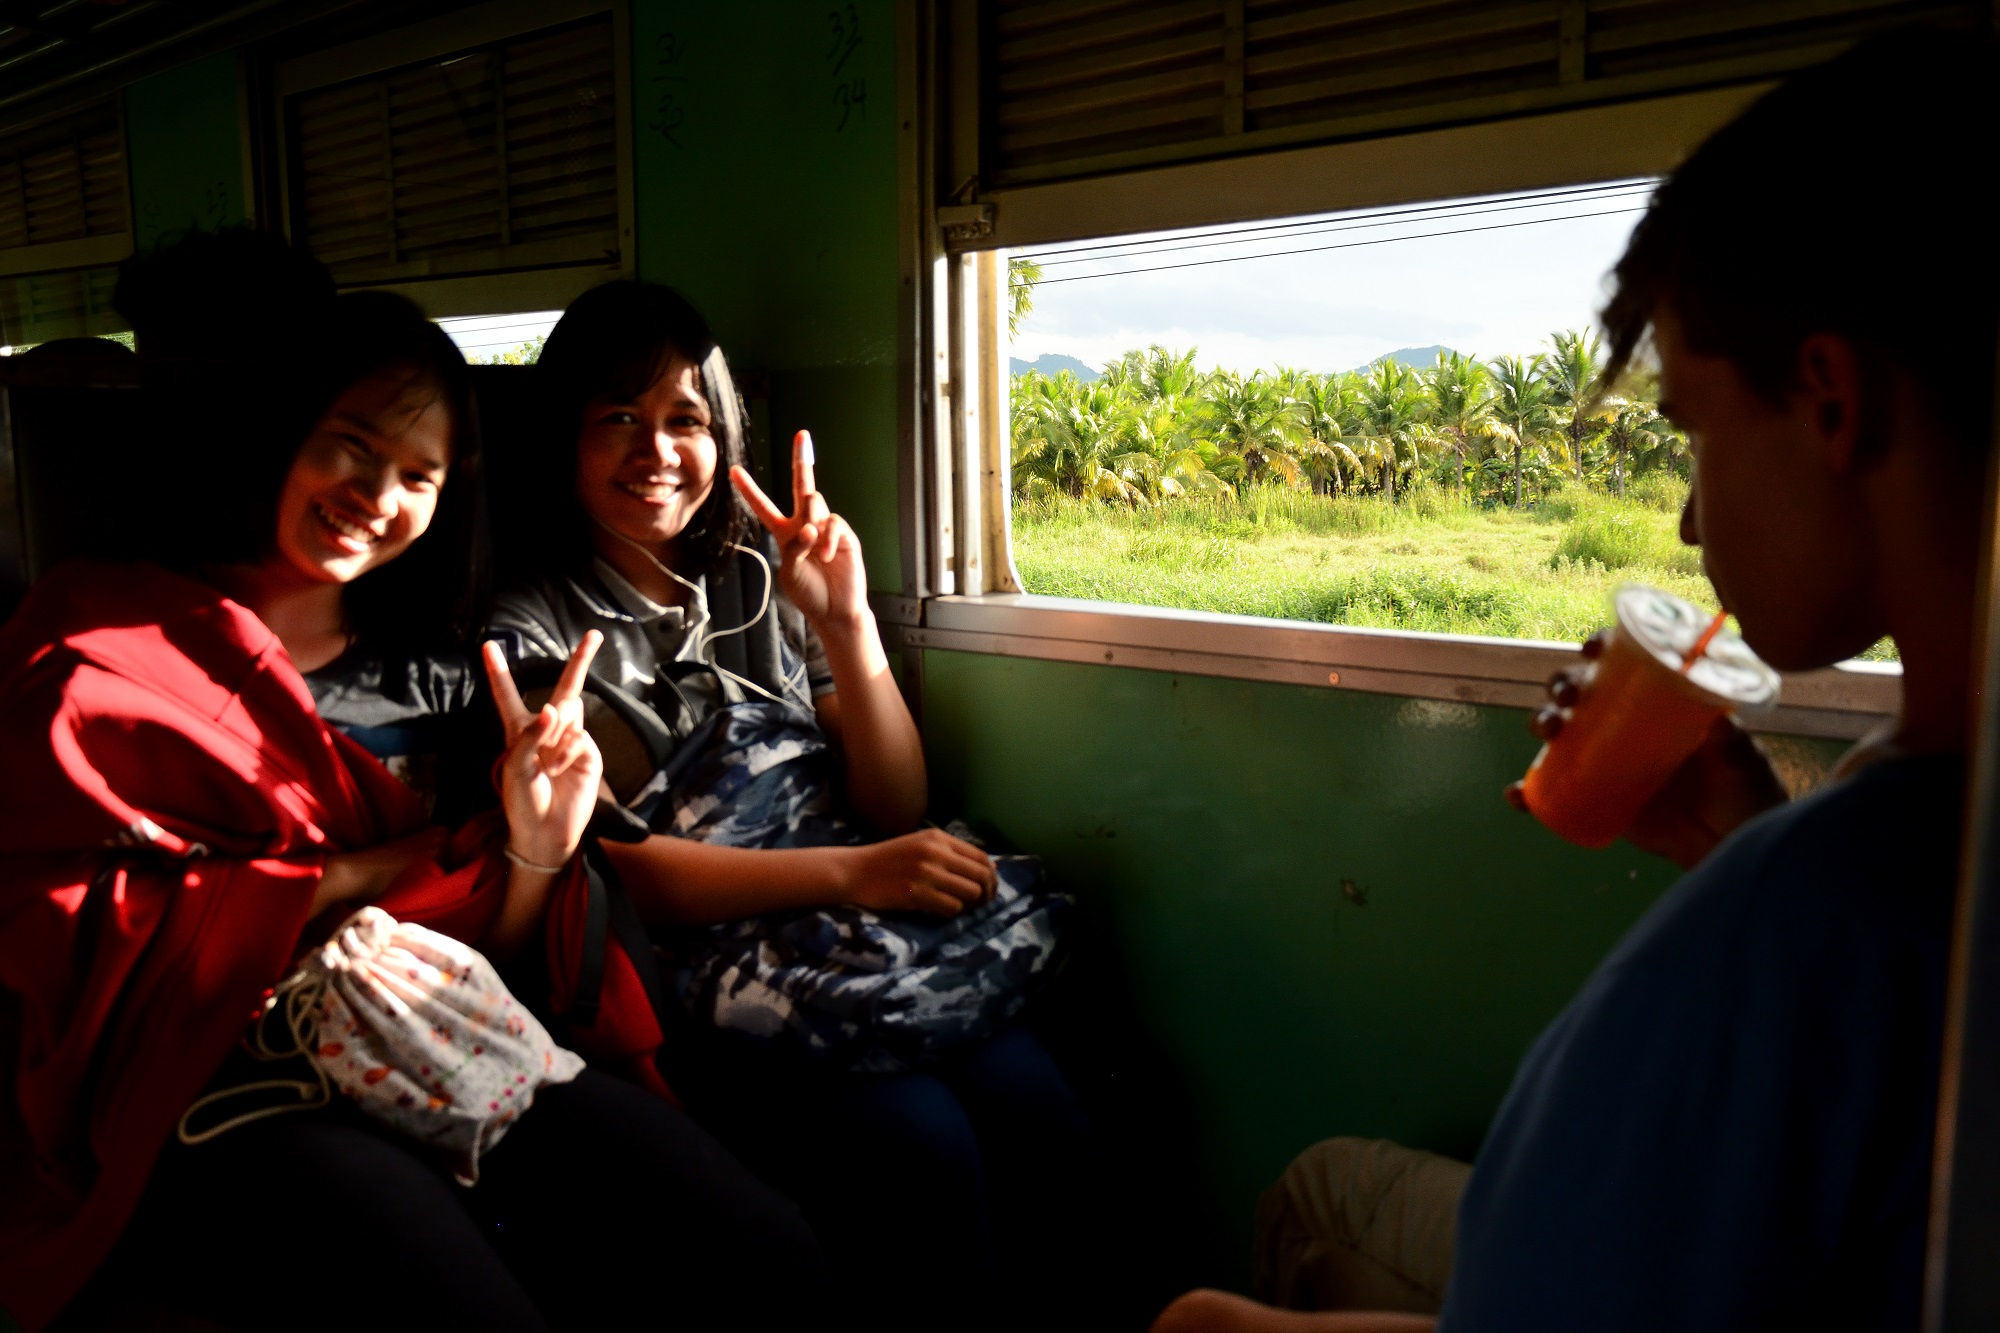 Thai girls on board the train heading south